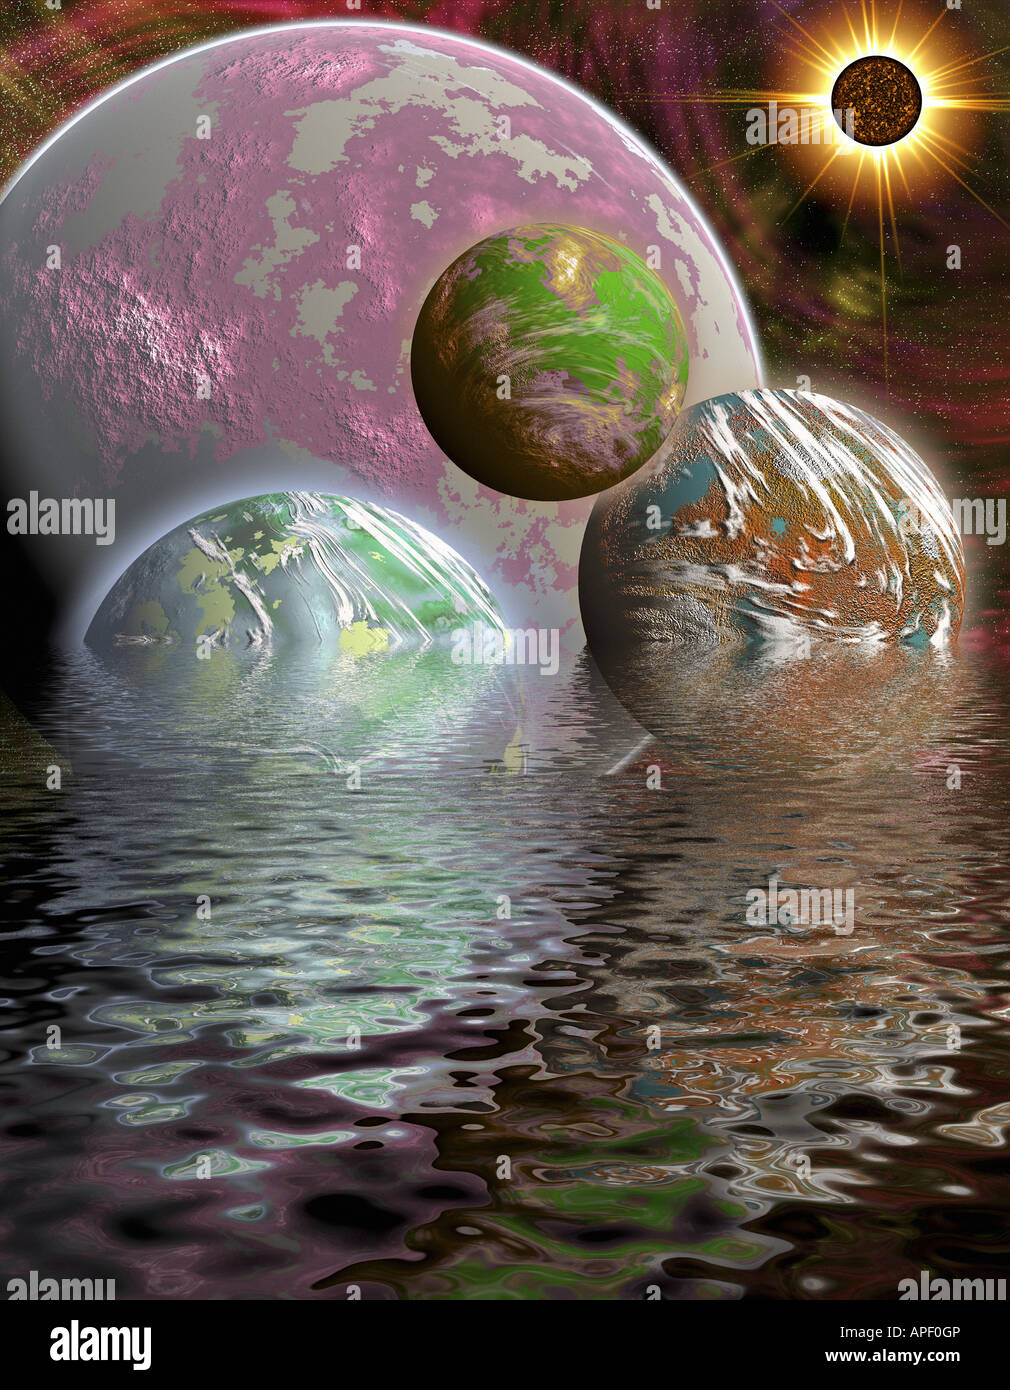 Surreal Scene Of Colorful Planets Floating And Half